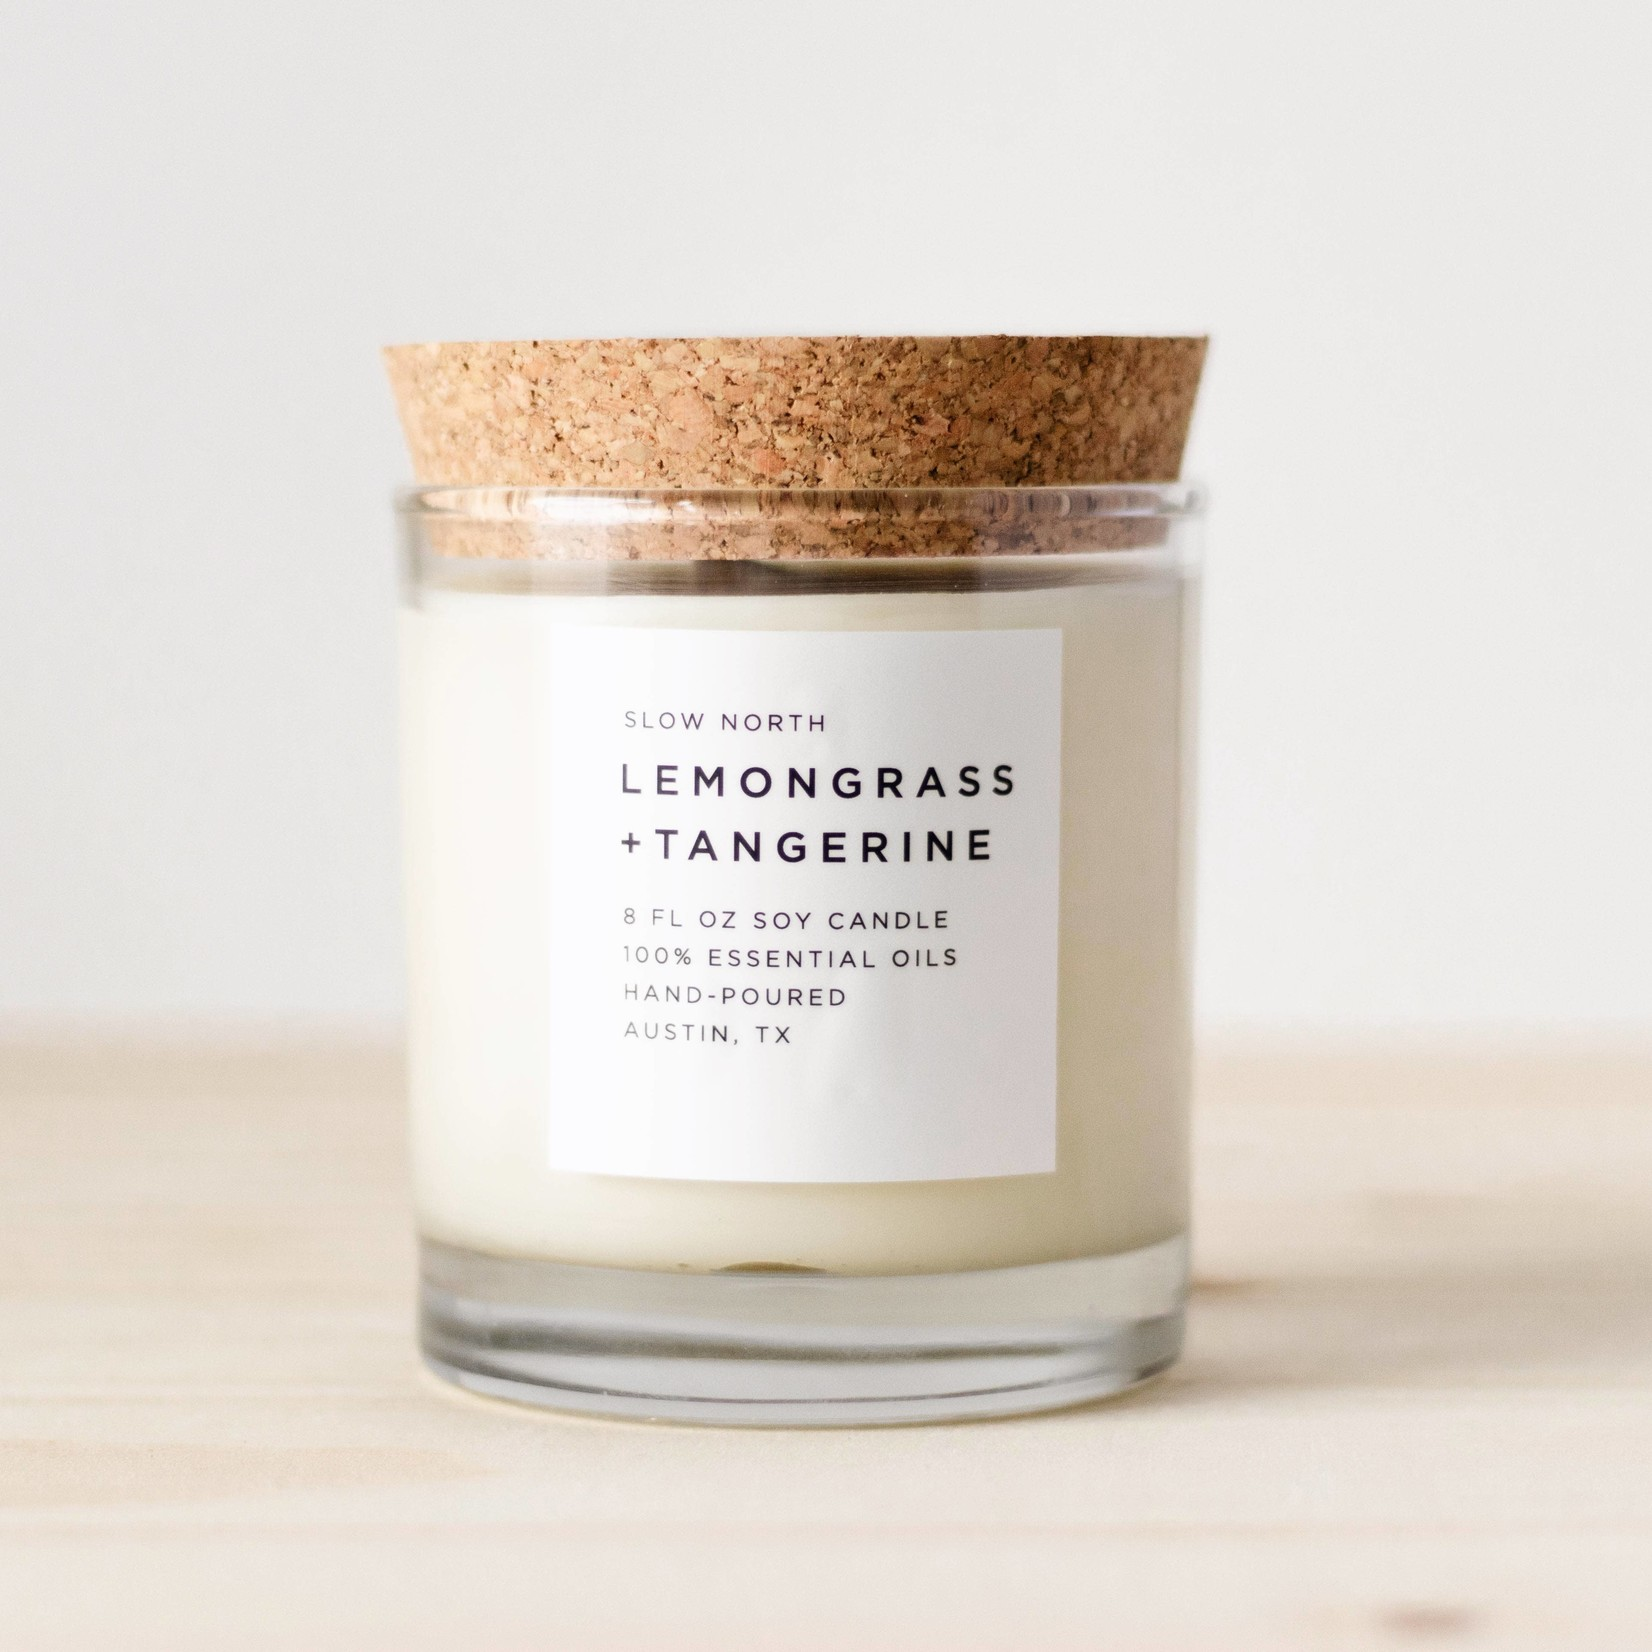 Slow North Hand-Poured Frosted Candles